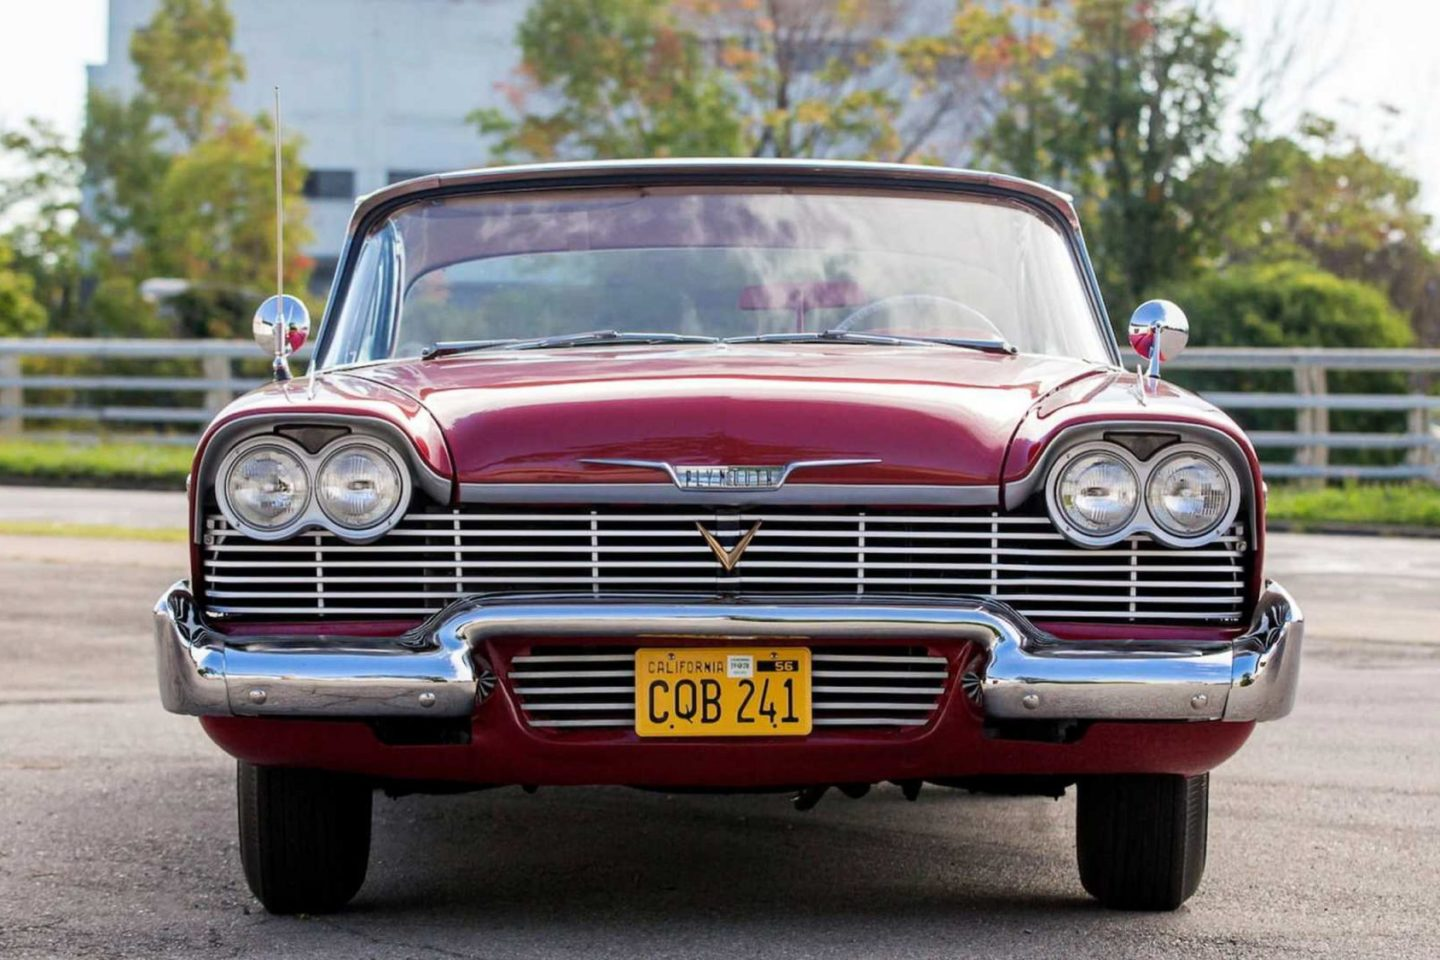 Christine, Plymouth Fury, 1958